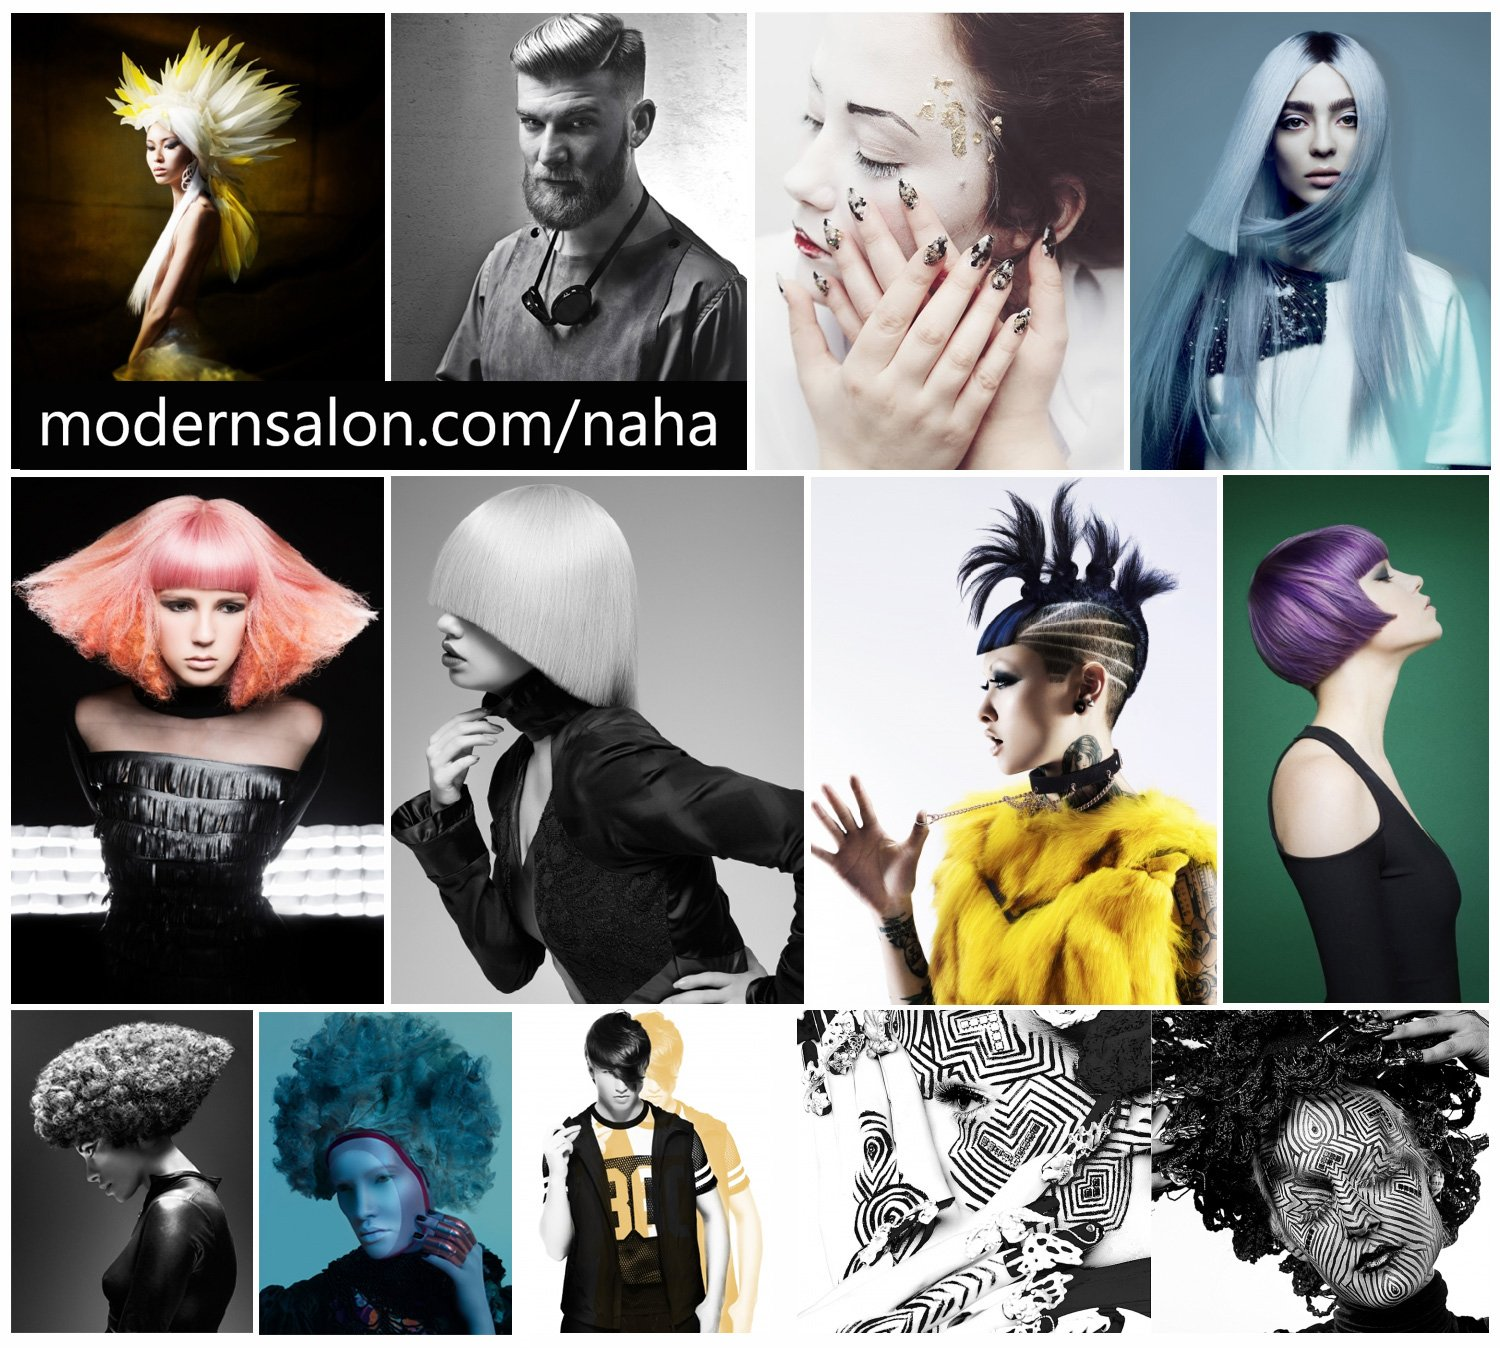 All NAHA images/photos are copyright © of the North American Hairstyling Awards (NAHA) and the Professional Beauty Association (PBA). All rights reserved.